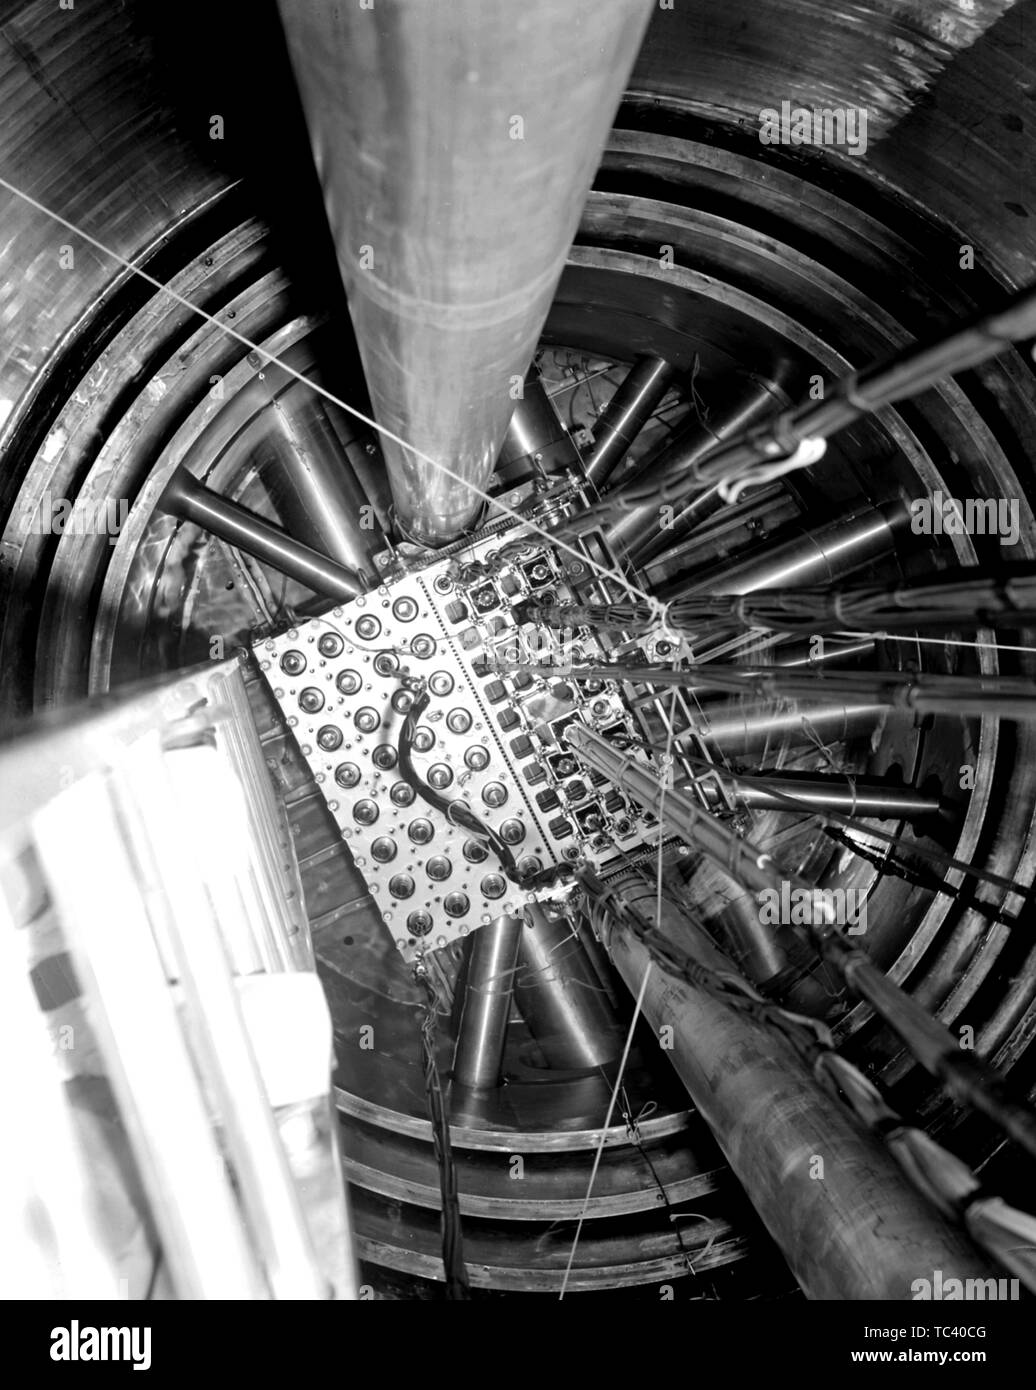 Reactor core area viewed from the top of the pressure tank, 1961. Image courtesy National Aeronautics and Space Administration (NASA). () - Stock Image